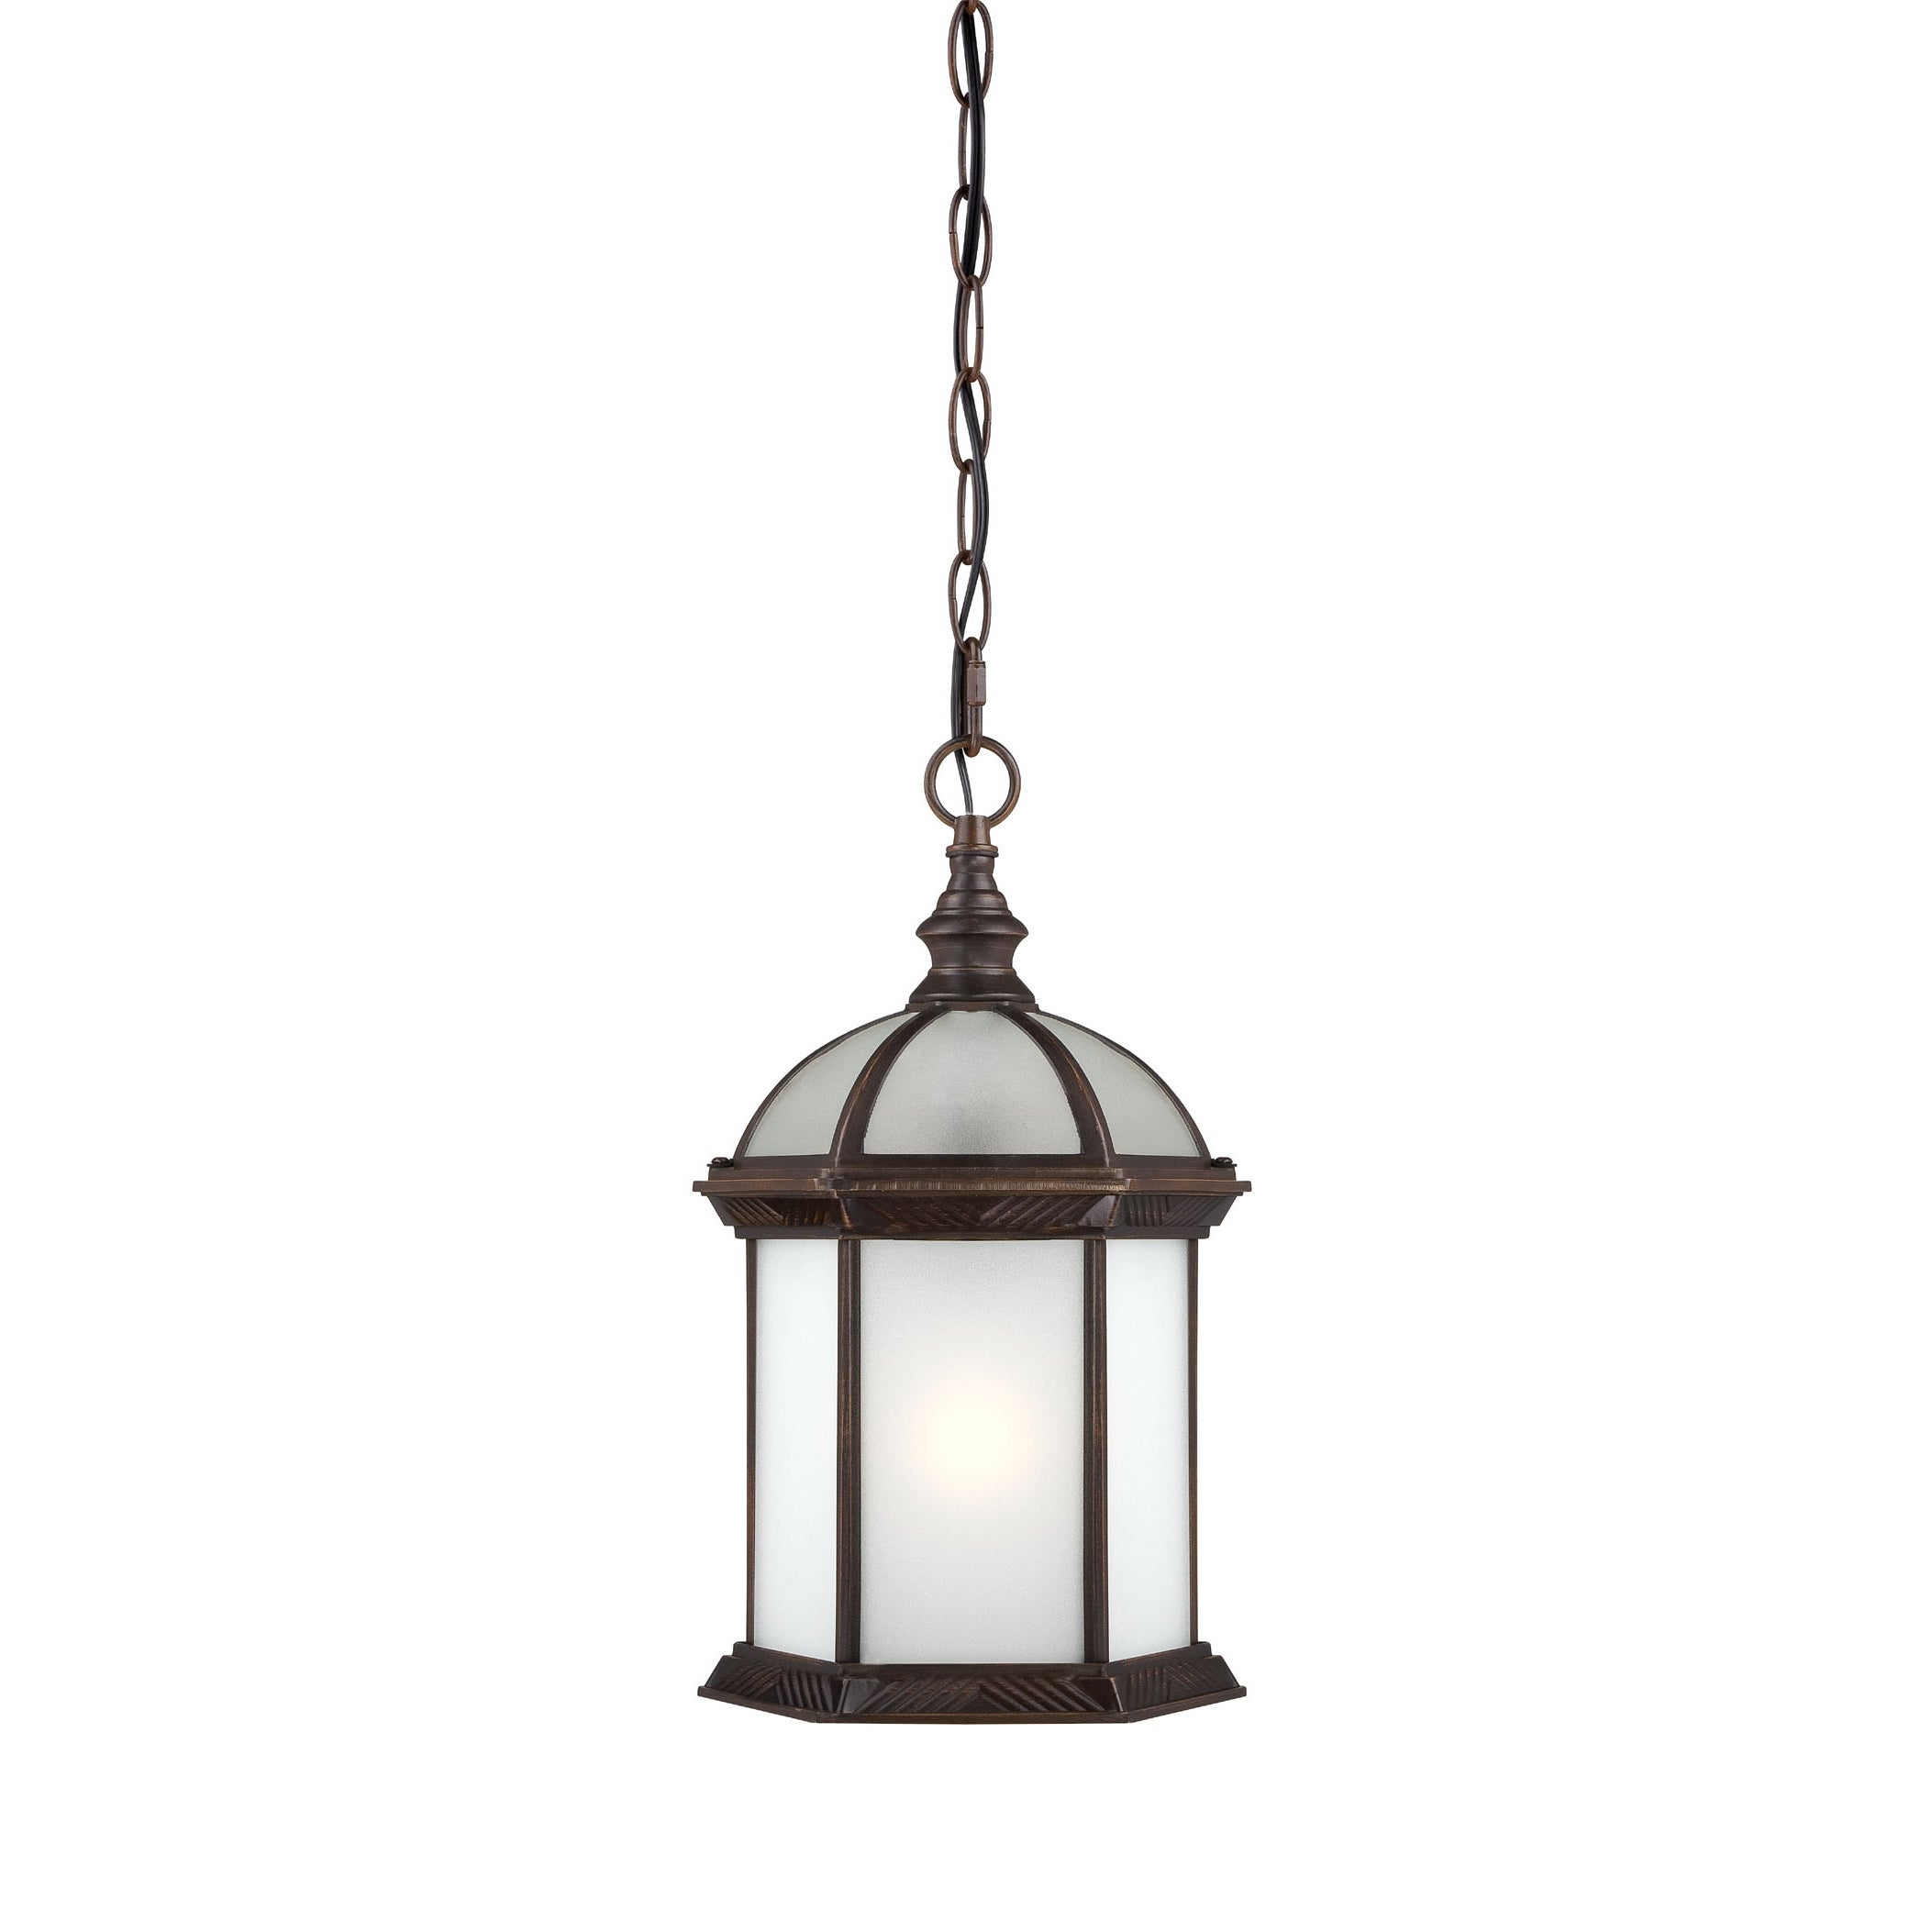 Nuvo Boxwood e Light Rustic Bronze 14 Inch Hanging